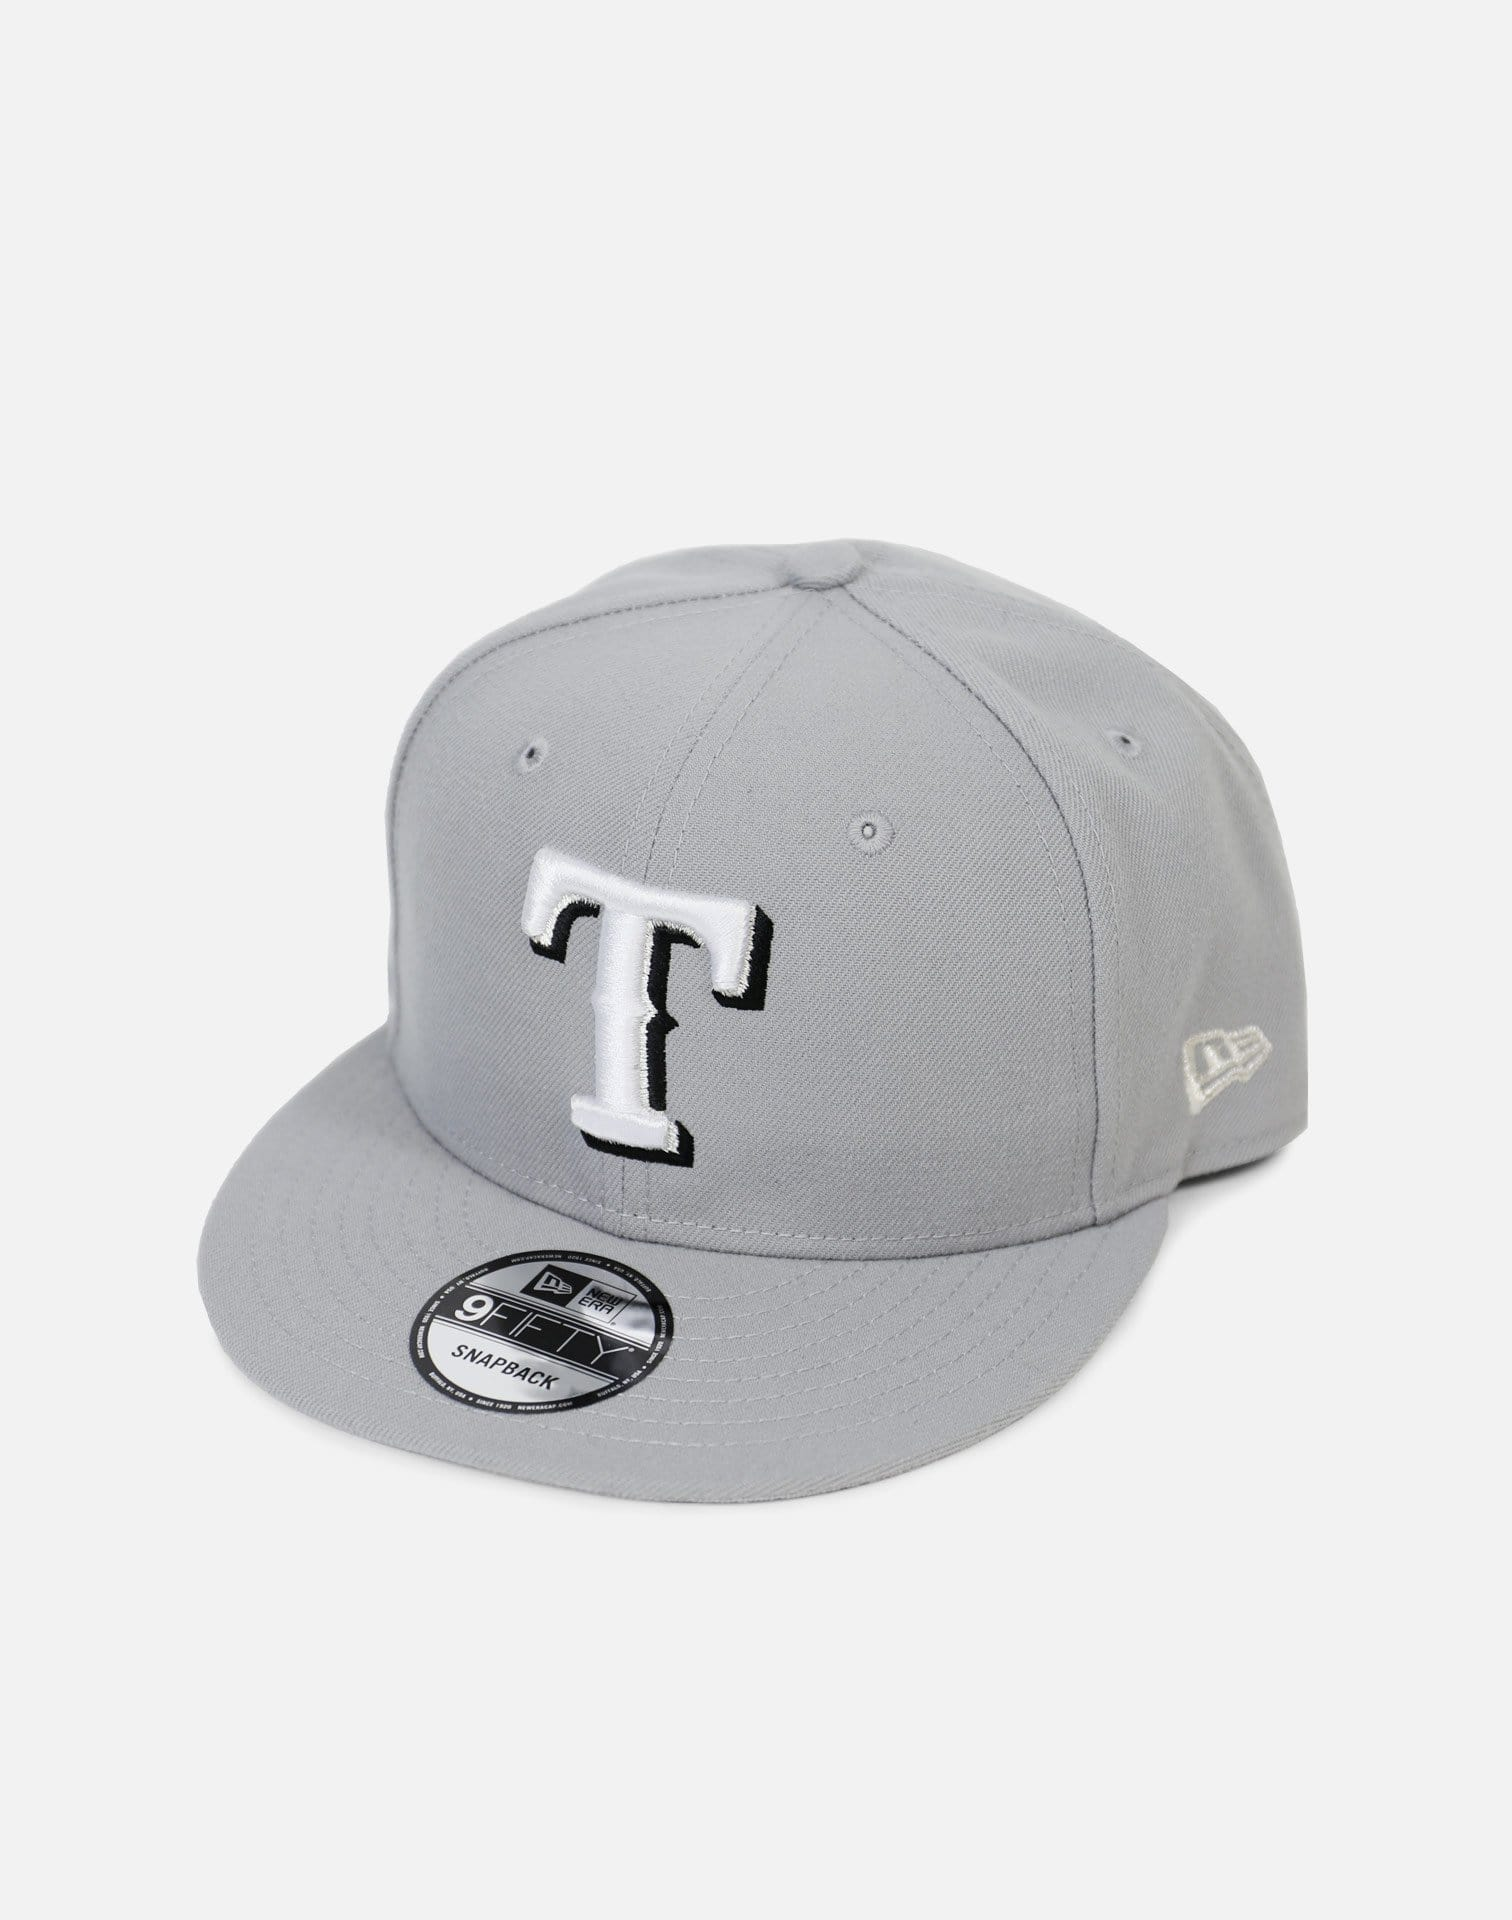 New Era Texas Rangers 'Pure Money' Snapback Hat (Grey)